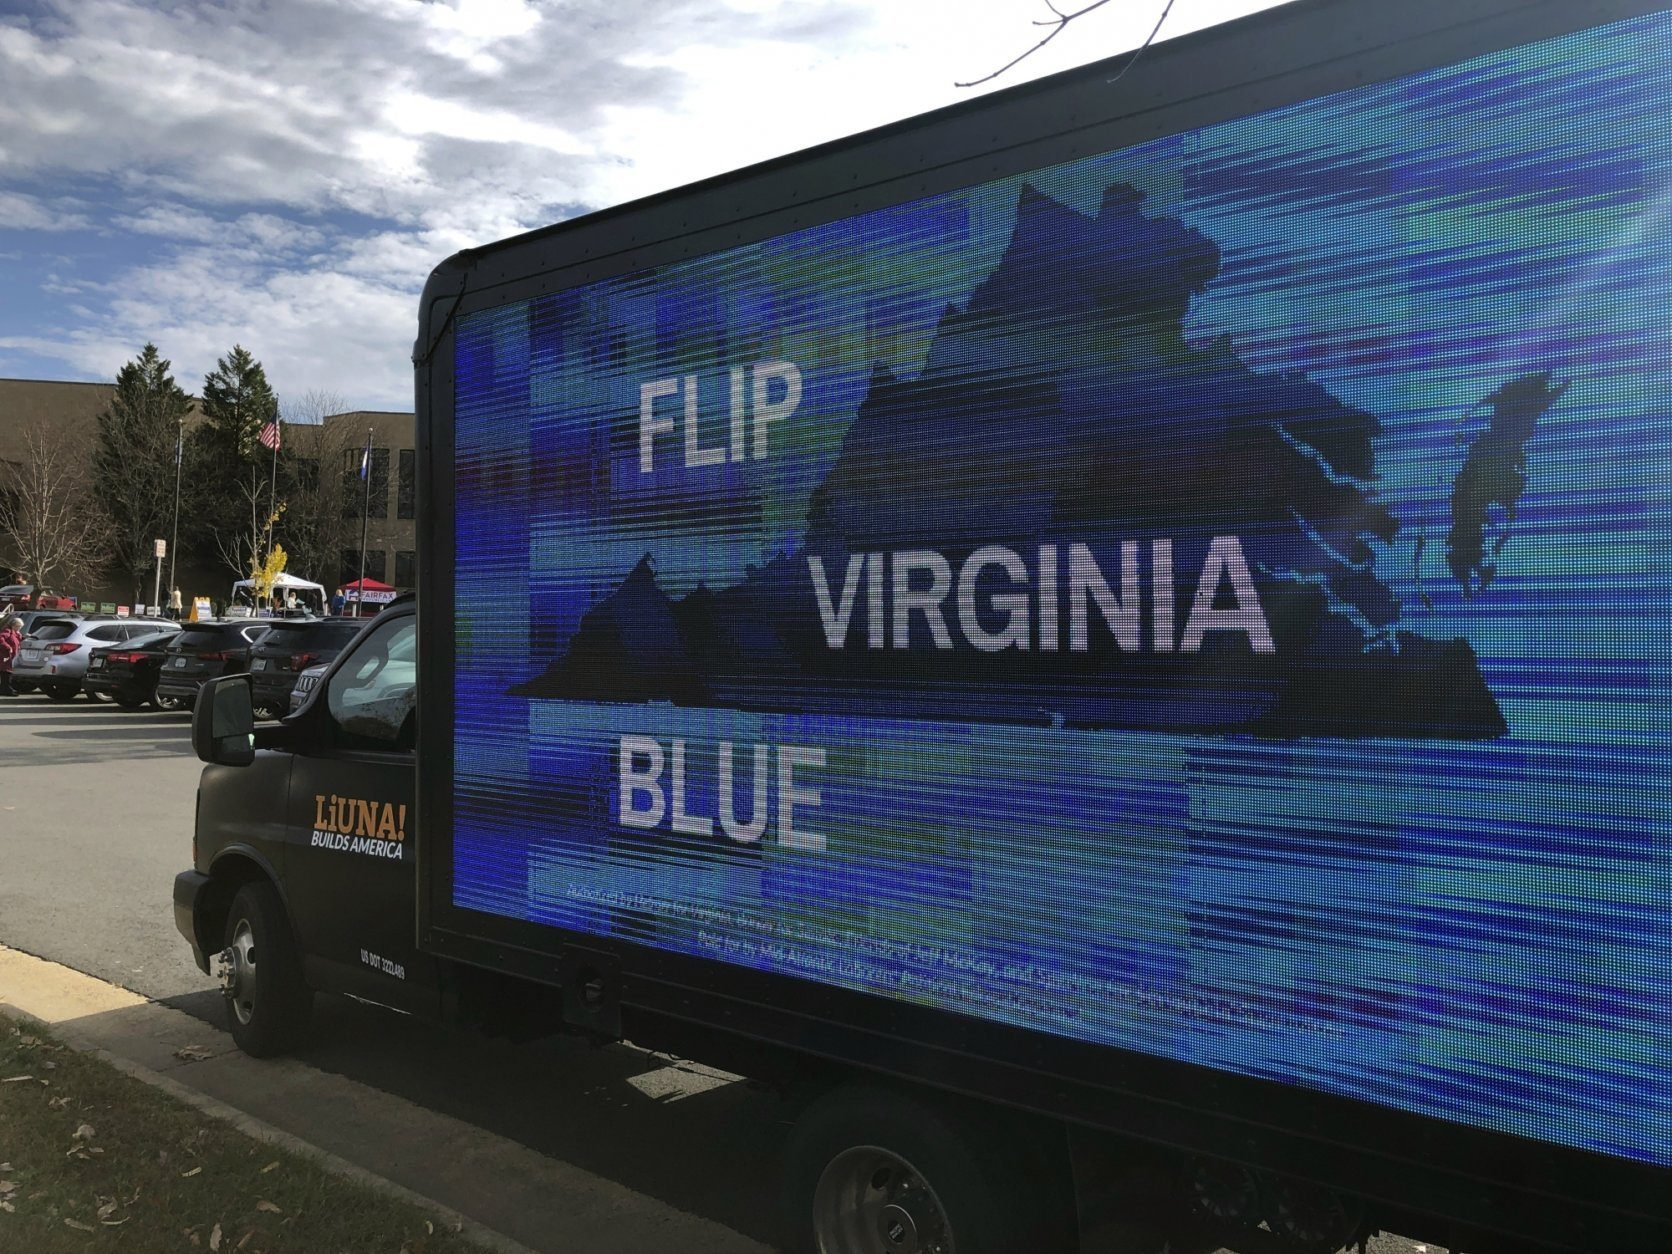 A mobile billboard urges voters to cast ballots for Democrats outside Centreville High School in Clifton, Va., Tuesday, Nov. 5, 2019. (AP Photo/Matthew Barakat)